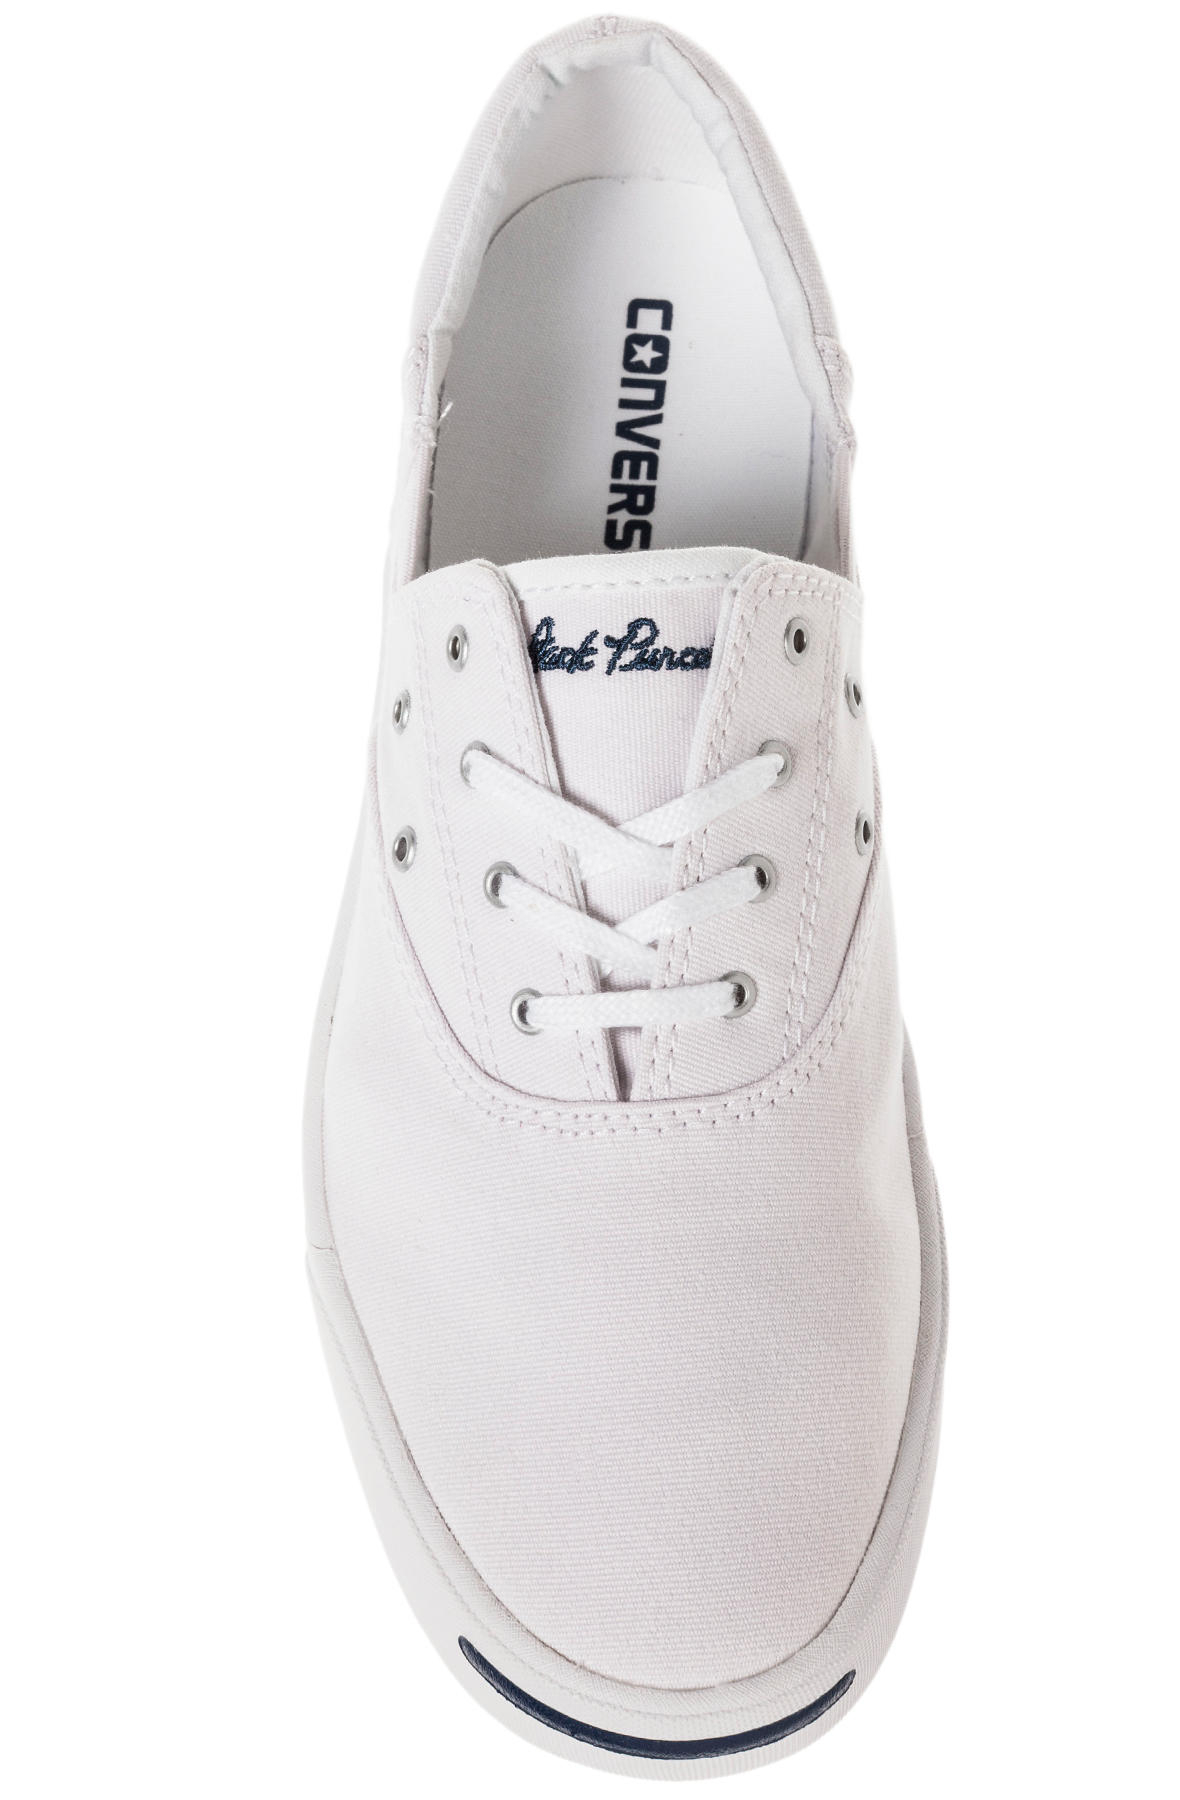 00de1d0a62f Lyst - Converse The Jack Purcell Jeffrey Cvo Sneaker in White for Men